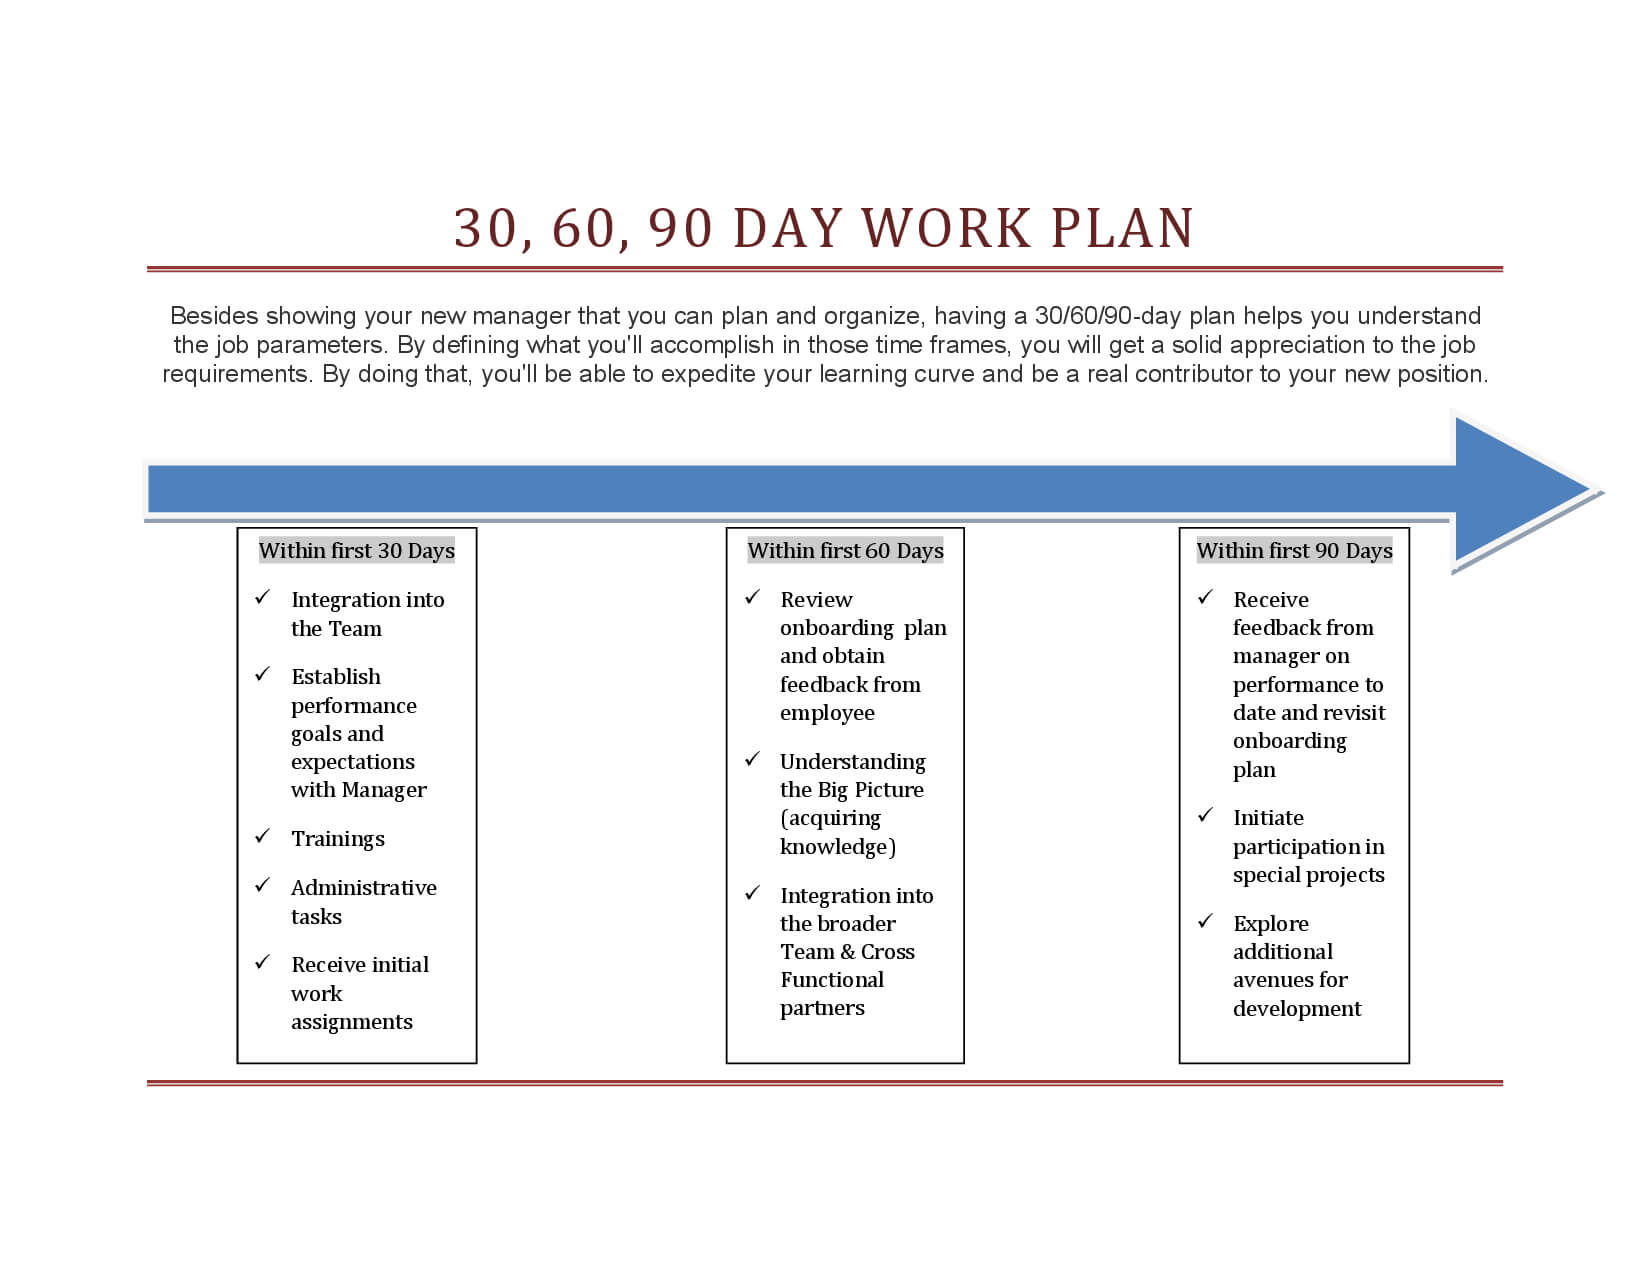 011 Day Template Ideas Stirring 30 60 90 Plan Sample For Pertaining To 30 60 90 Day Plan Template Word